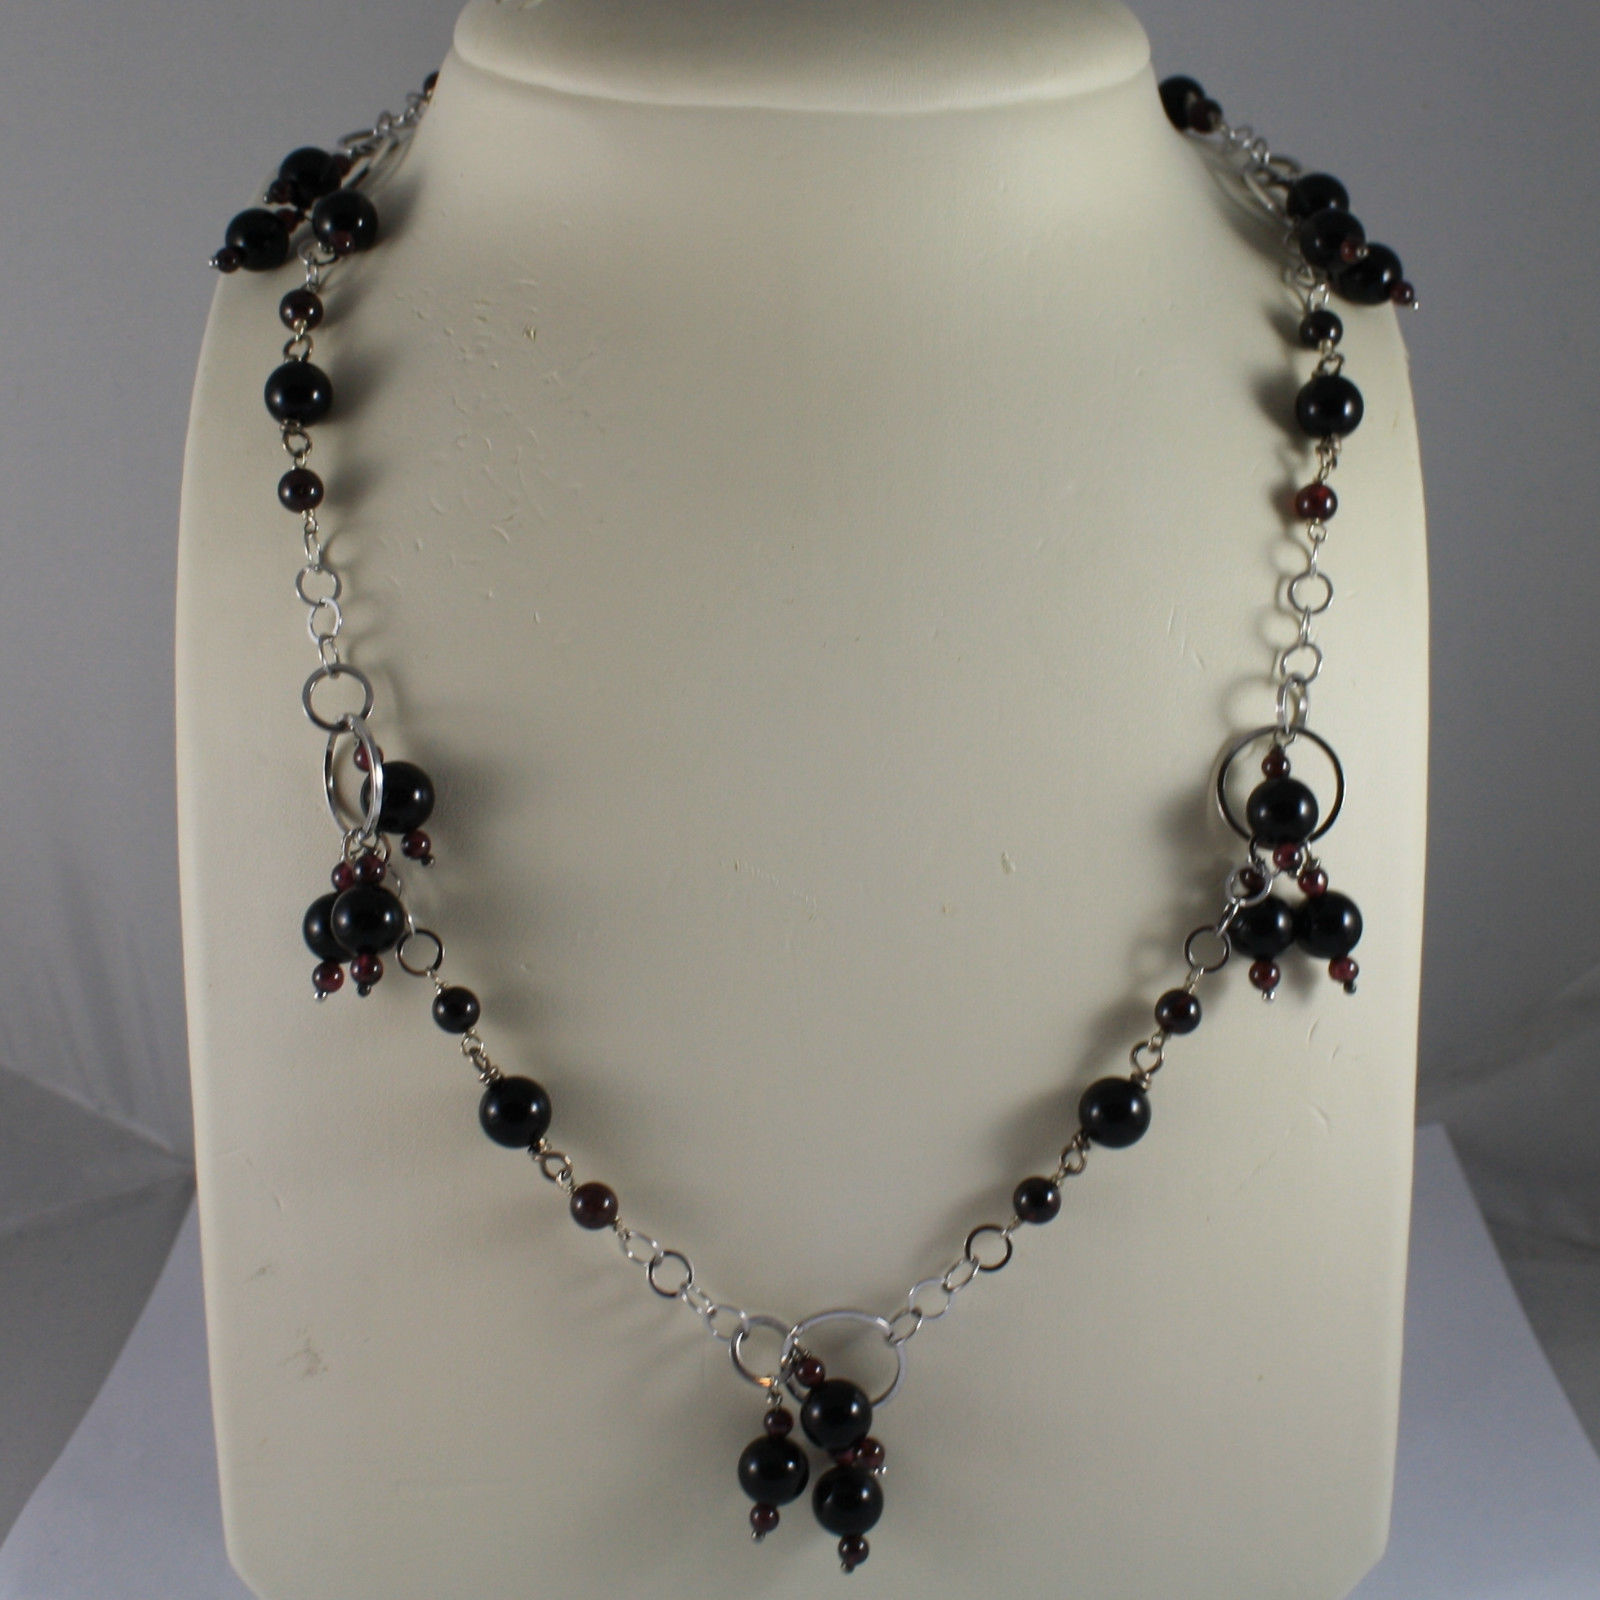 .925 SILVER RHODIUM NECKLACE WITH BLACK ONYX AND GRENADE